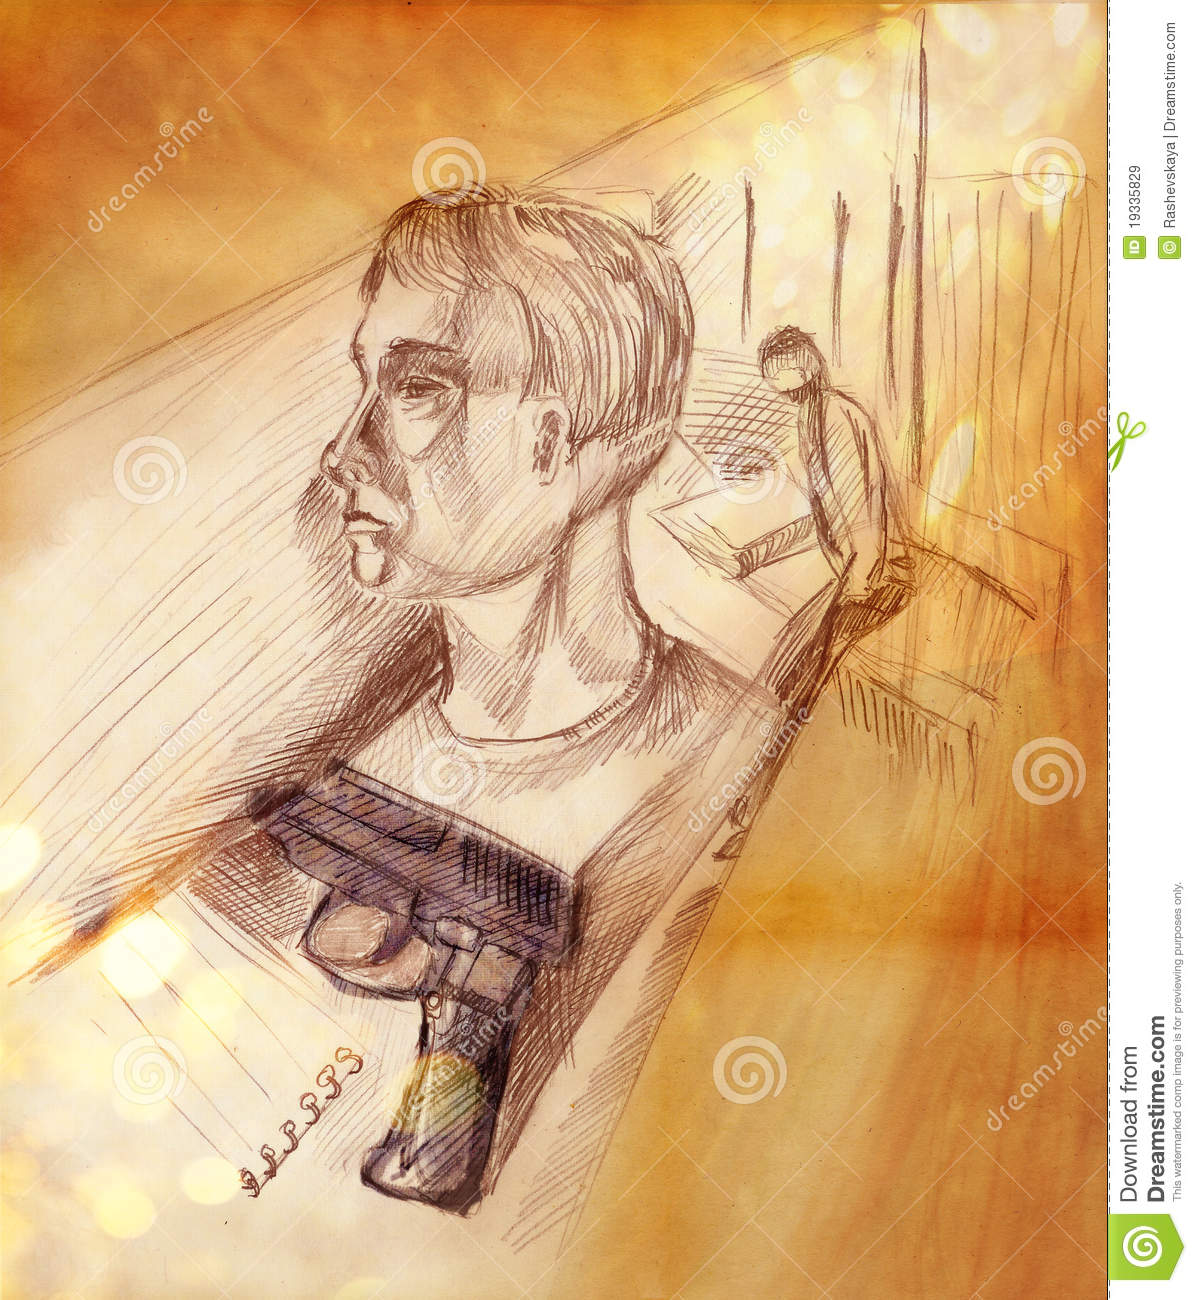 Illustration of a man in profile and a pistol